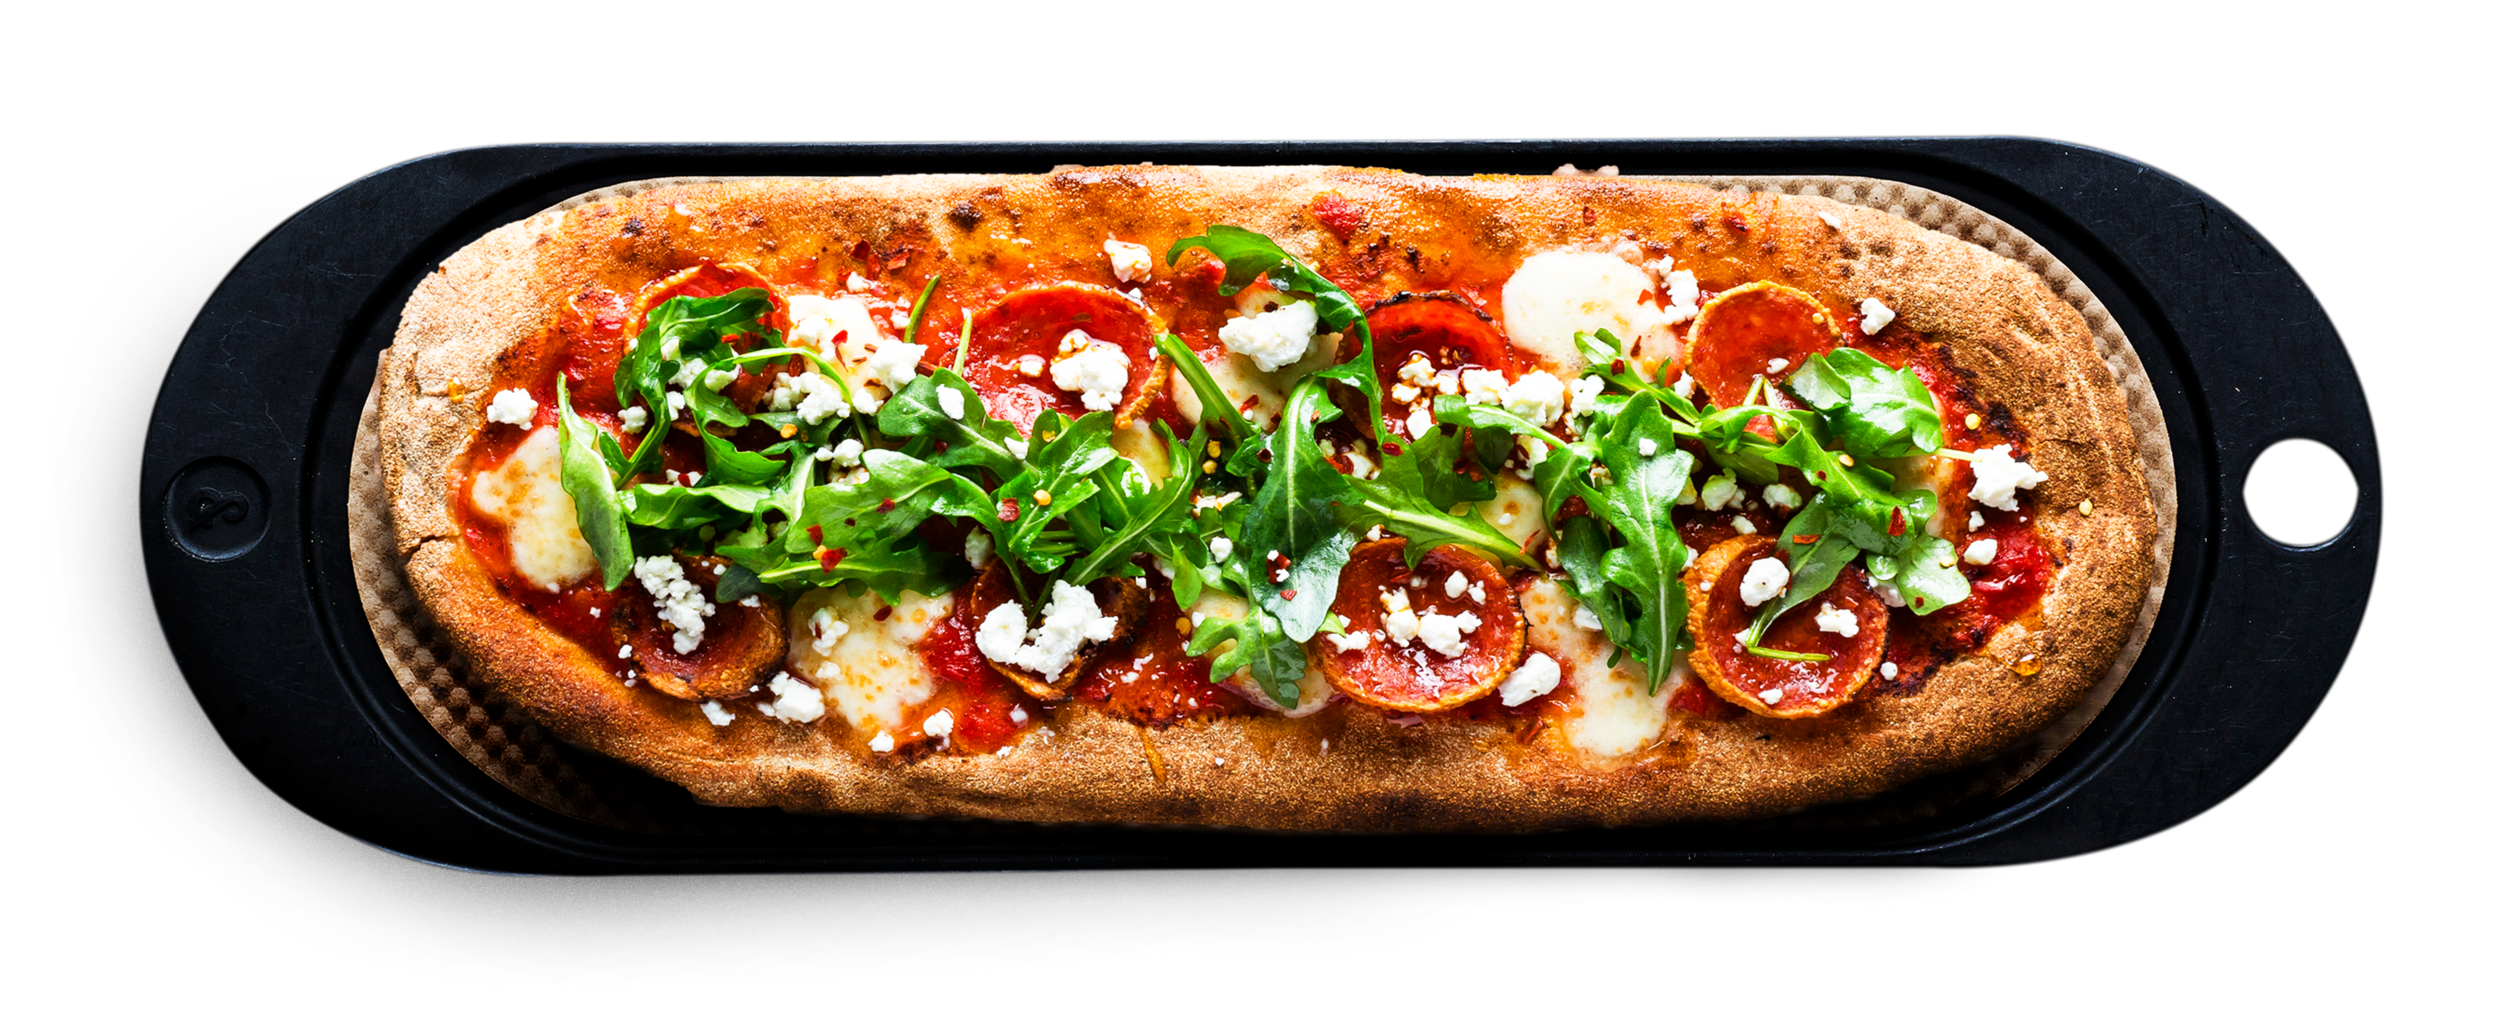 AMERICAN HONEY - Spicy tomato, mozzarella, pepperoni, arugula, goat cheese, hot honey, red pepper flakes